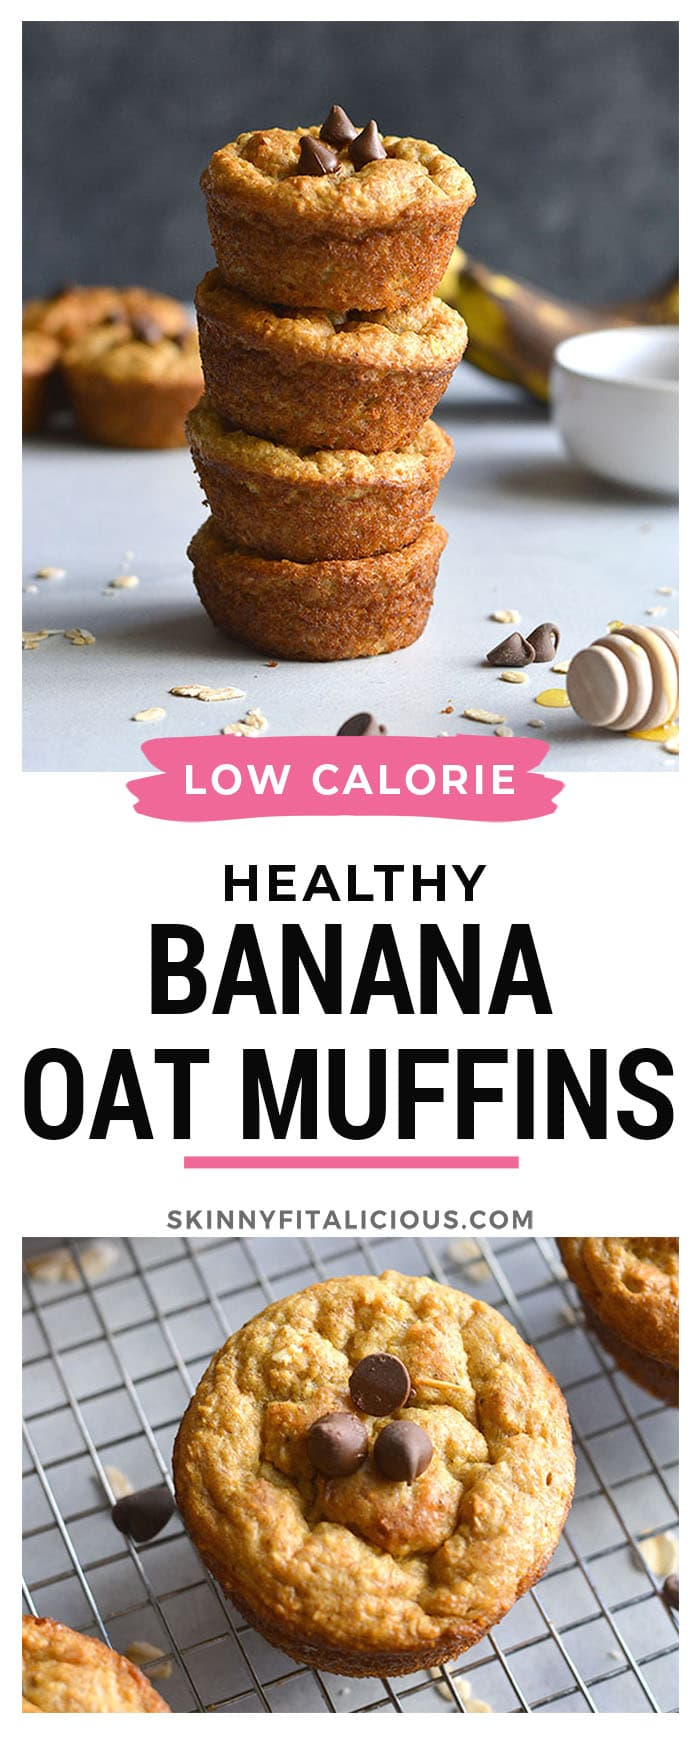 Low Calorie Banana Oat Muffins are made with no flour or oil and no added sugar. A healthy muffin made in a blender, moist and delicious! Low Calorie + Gluten Free